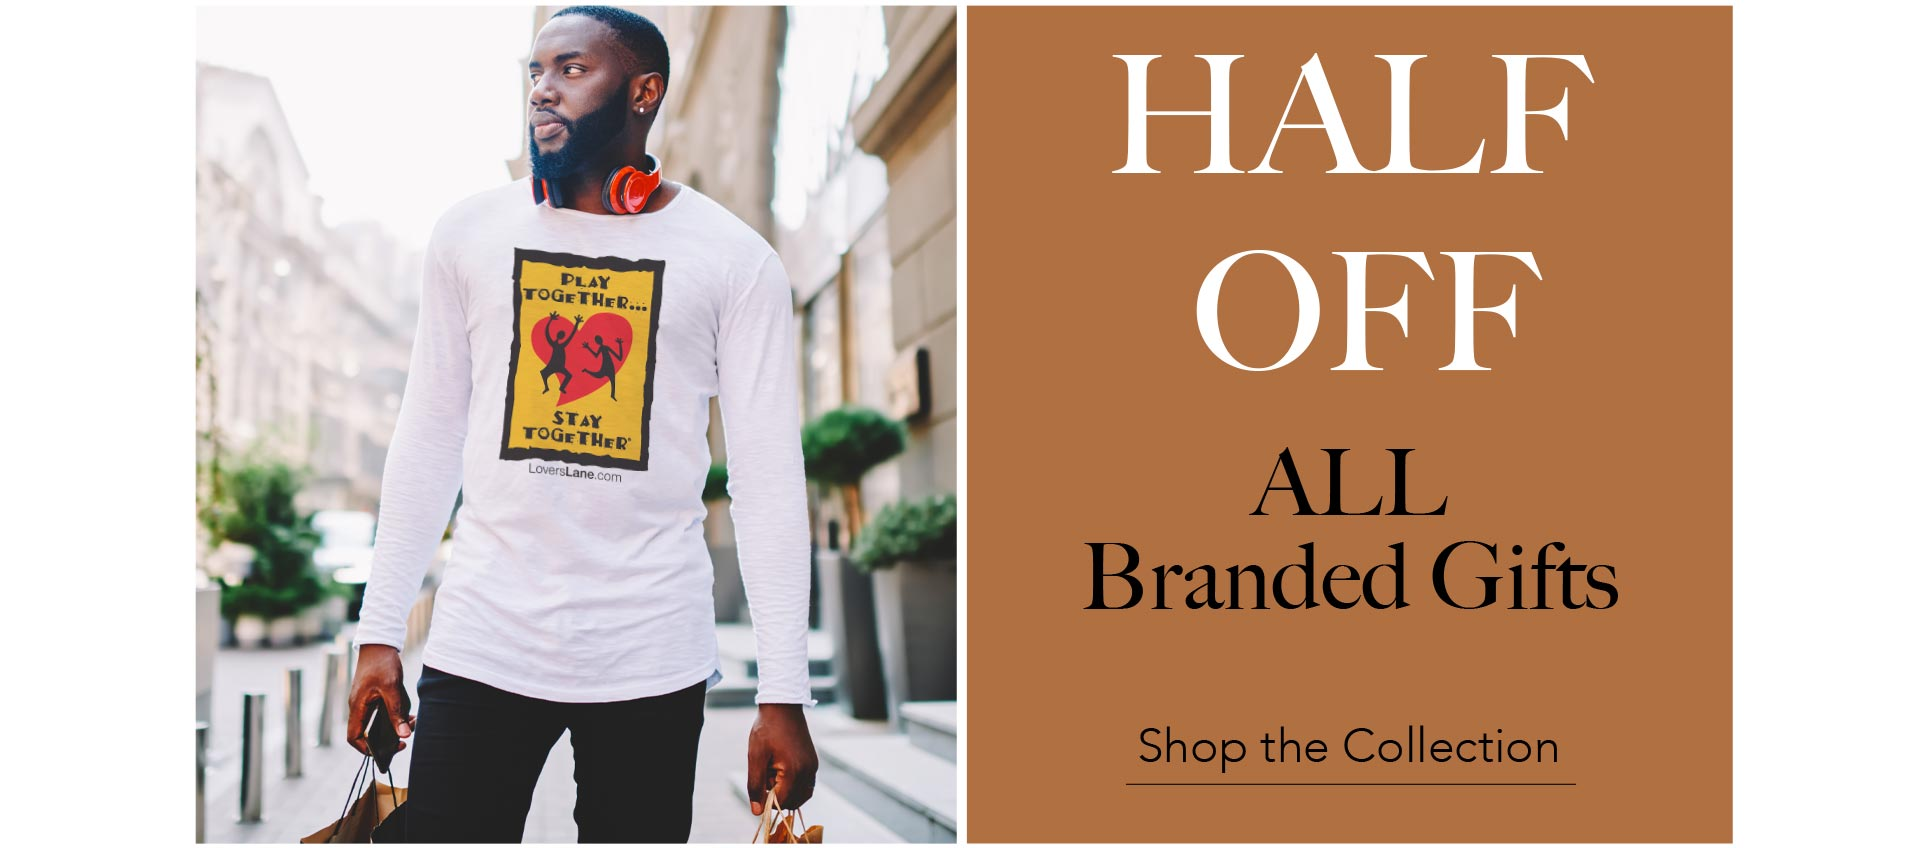 HALF OFF all branded Gifts! - Shop the collection